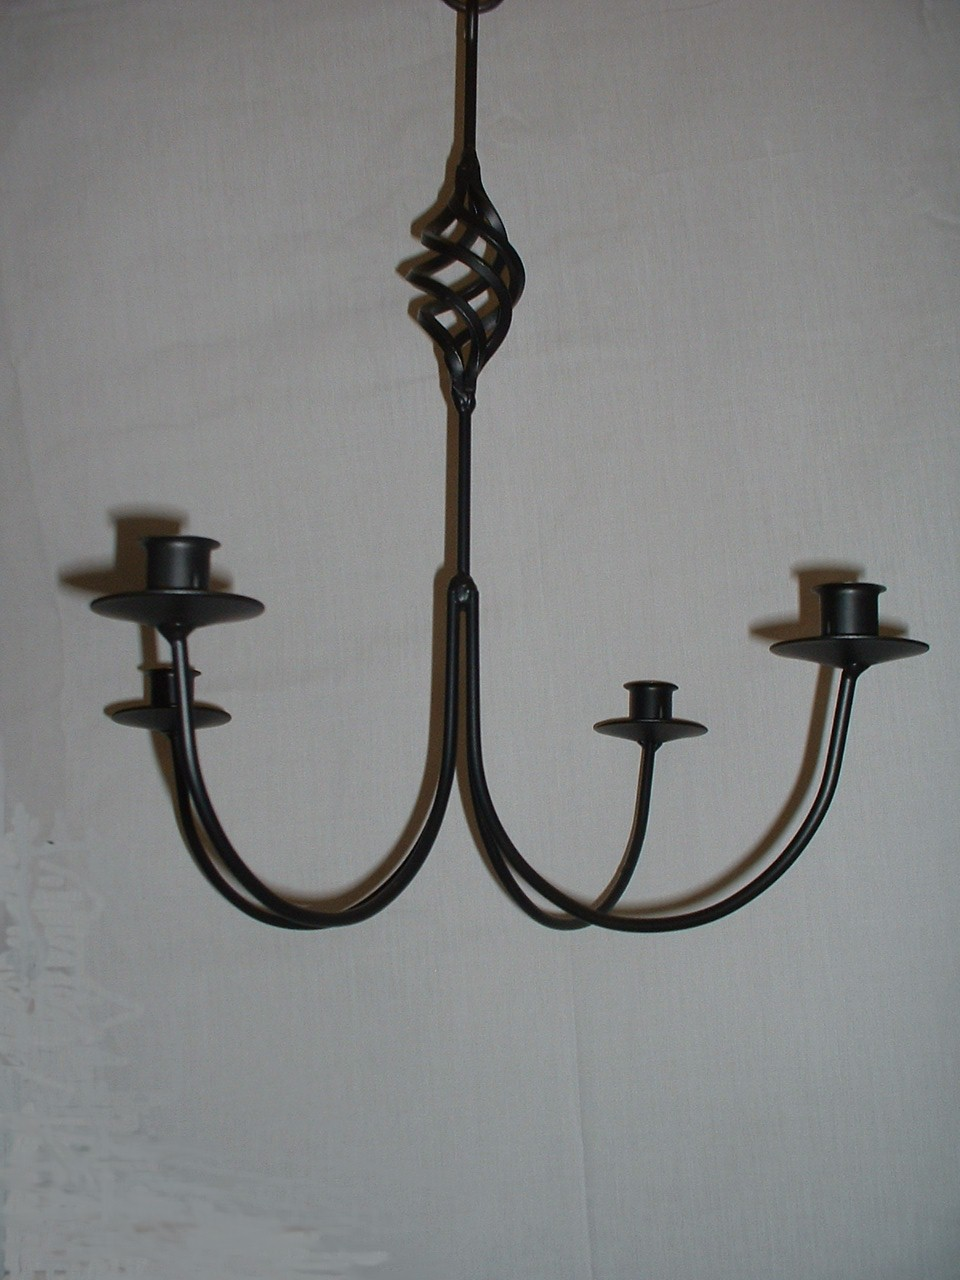 Lighting Candle Holders - 36 Rought Iron Old English Chandelier